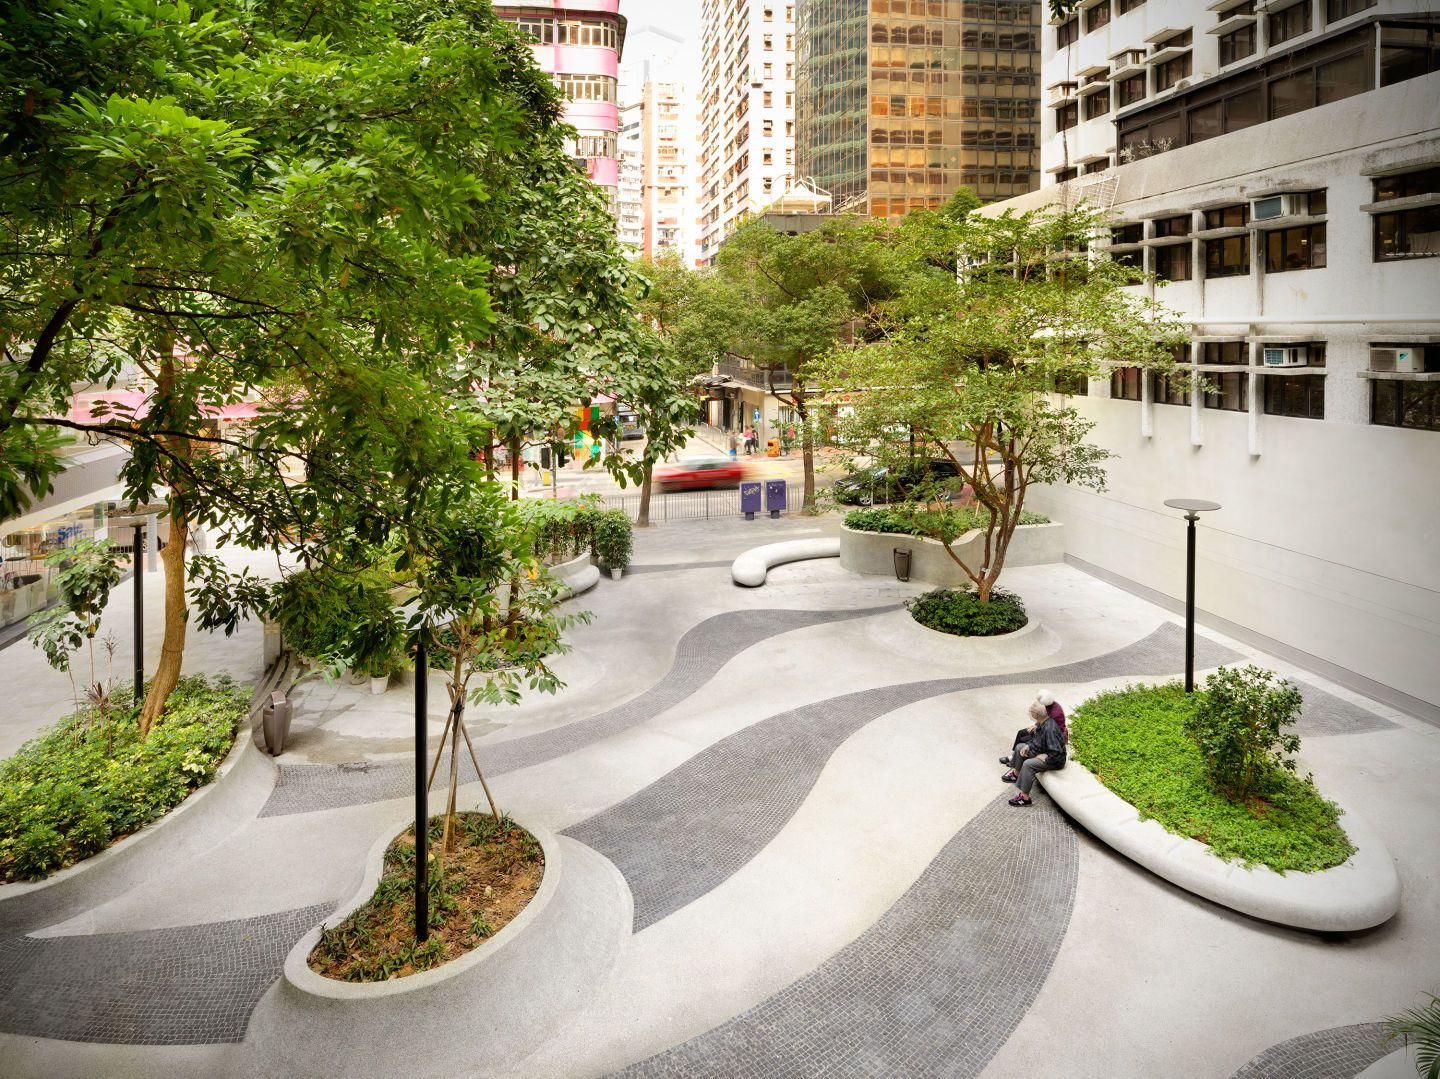 peg office of landscape architecture landscape ideas